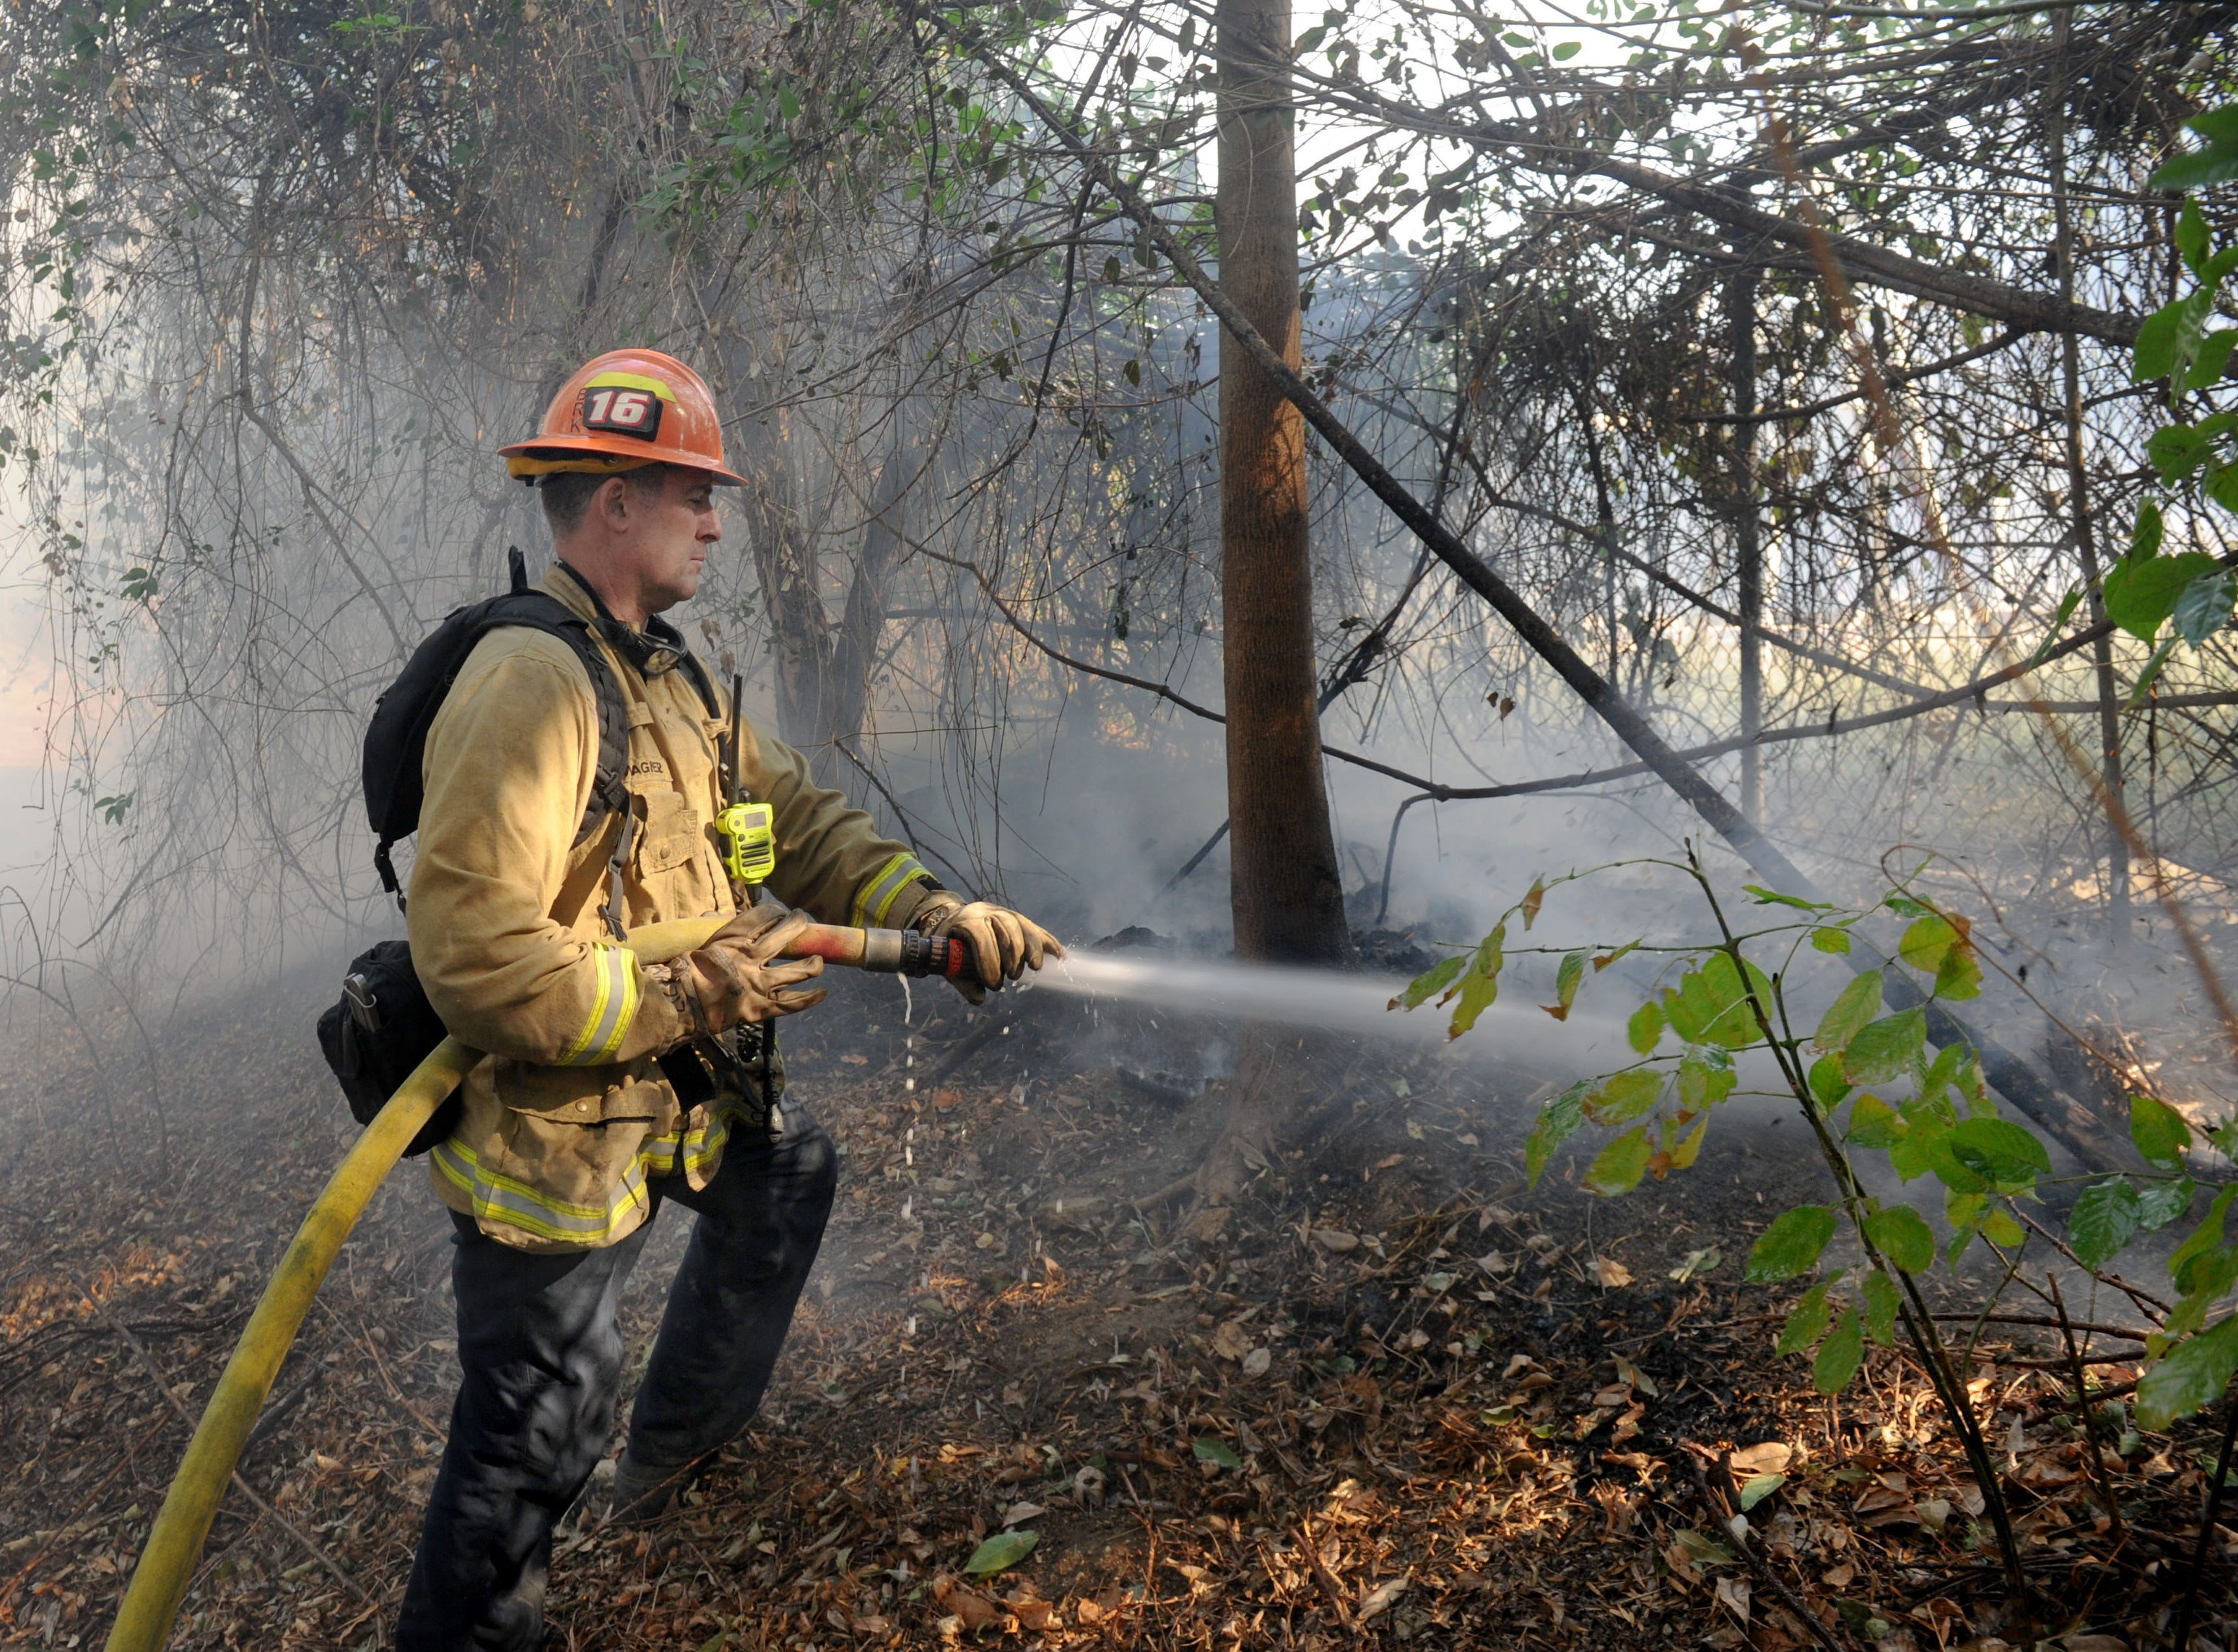 A firefighter hoses down some trees at Erbes Road and El Monte Drive in Thousand Oaks on Friday. The Woolsey Fire affected several communities in the Conejo Valley.